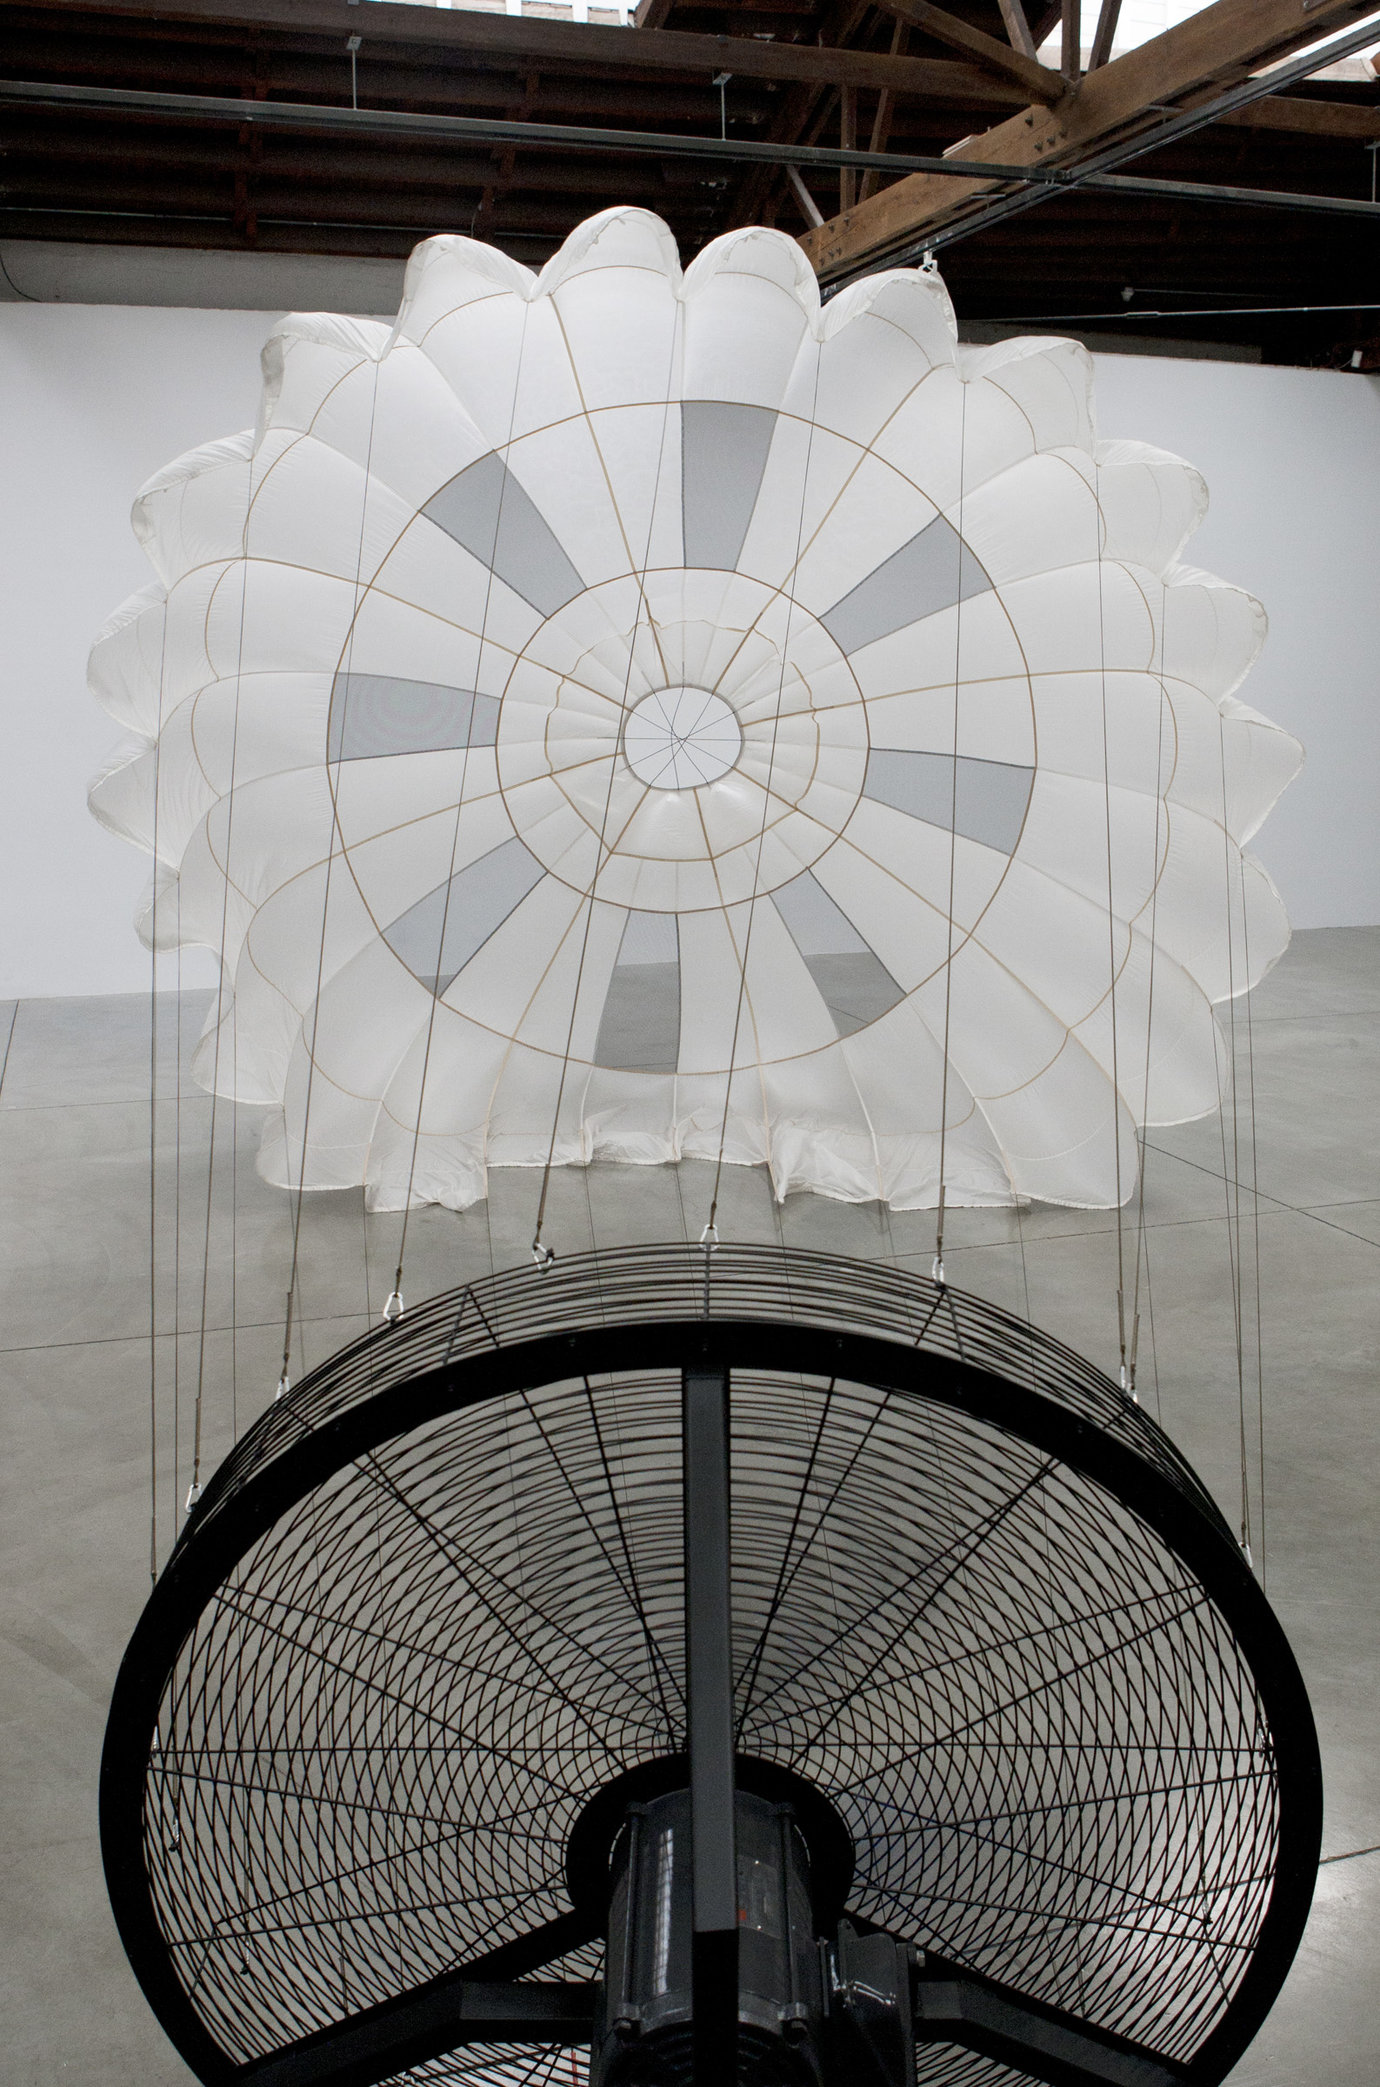 , 2011. Parachute, wind machine, sound proof paneling, installation dimensions variable, site specific.